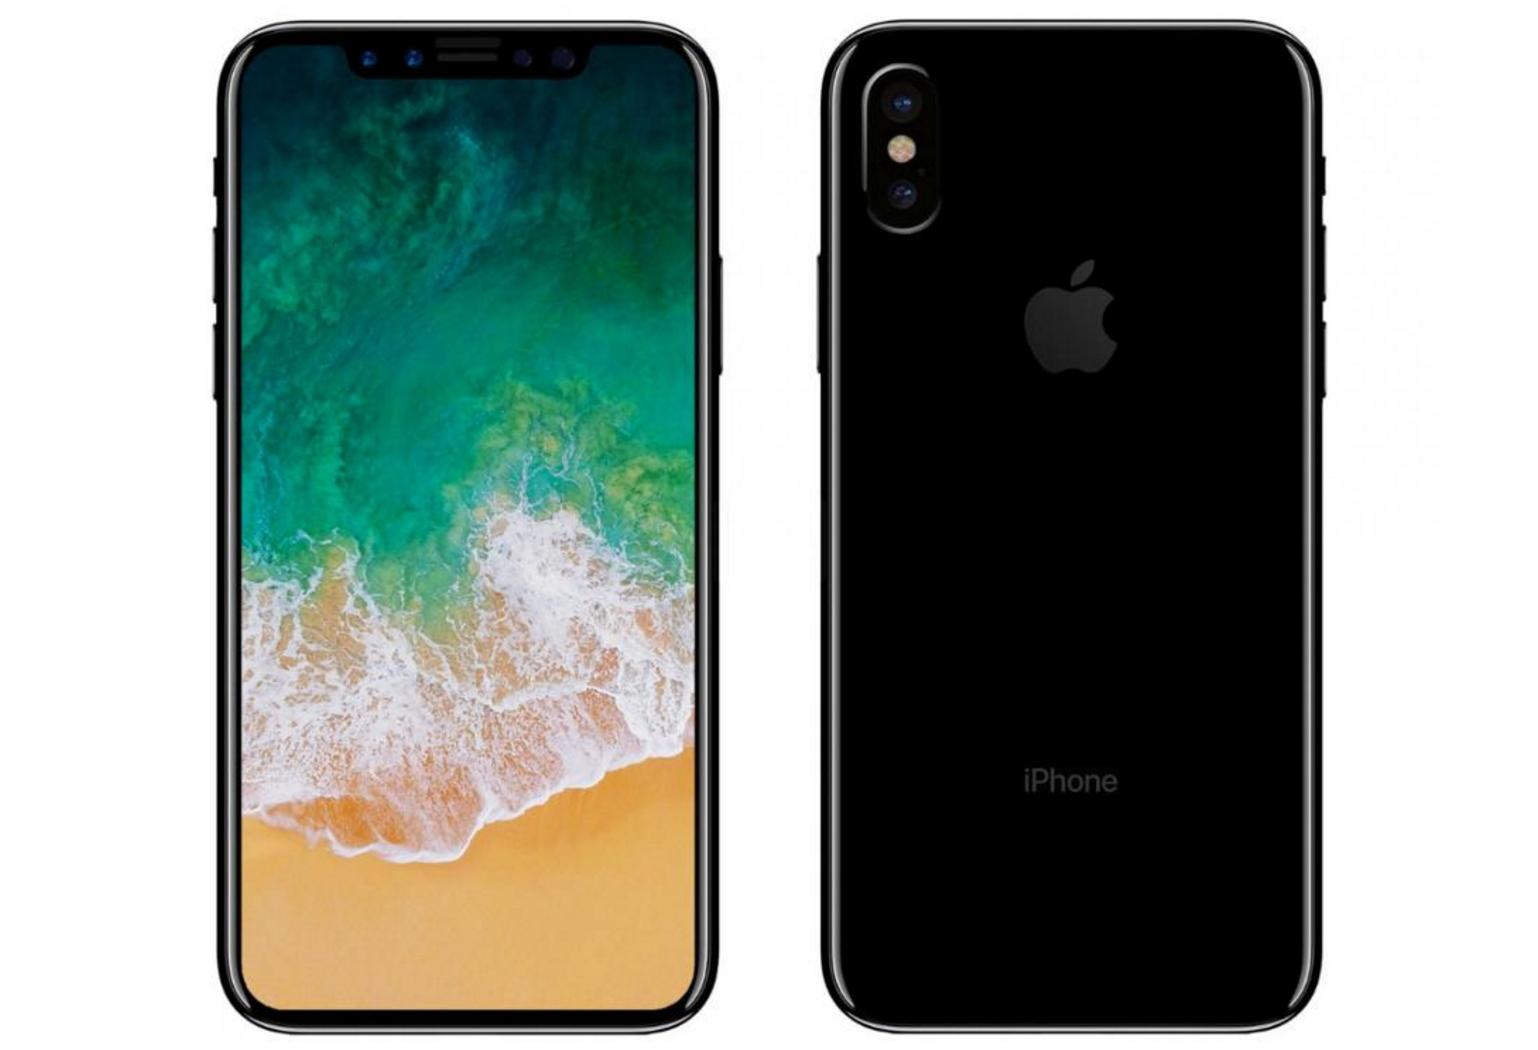 Iphone 8 and 8 Plus includes a smaller battery capacity when compared with the iPhone 7 and 7 Plus